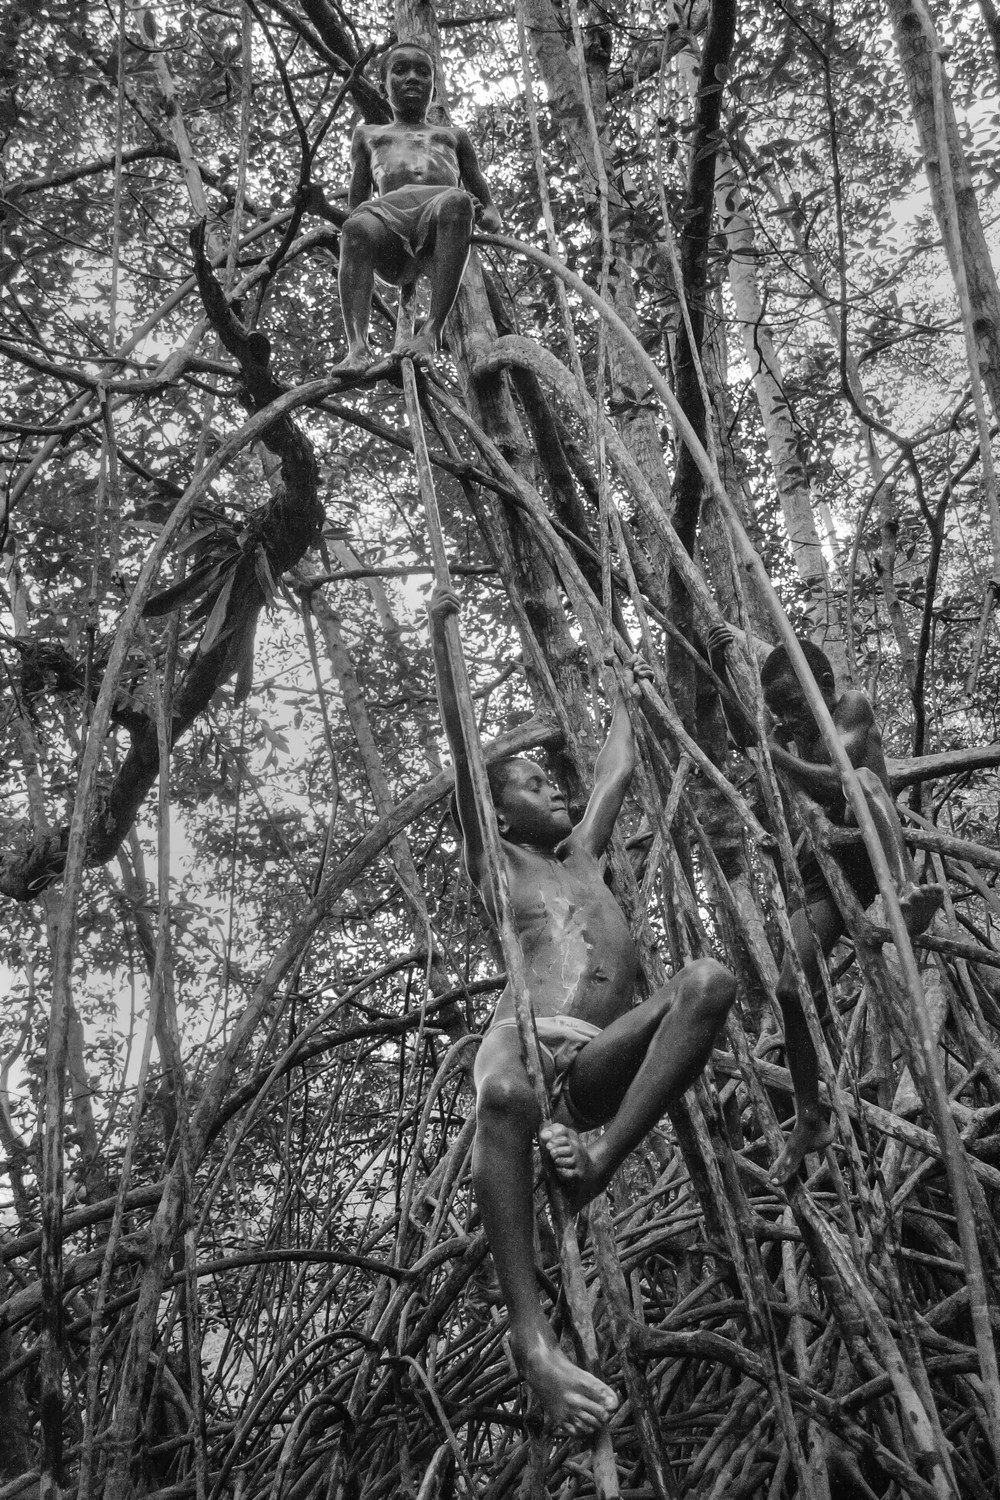 Children play on the roots of the mangroves in the Cayapas Mataje Reserve. Their movements are effortless as if the branches and roots were extensions of their bodies. 2010.